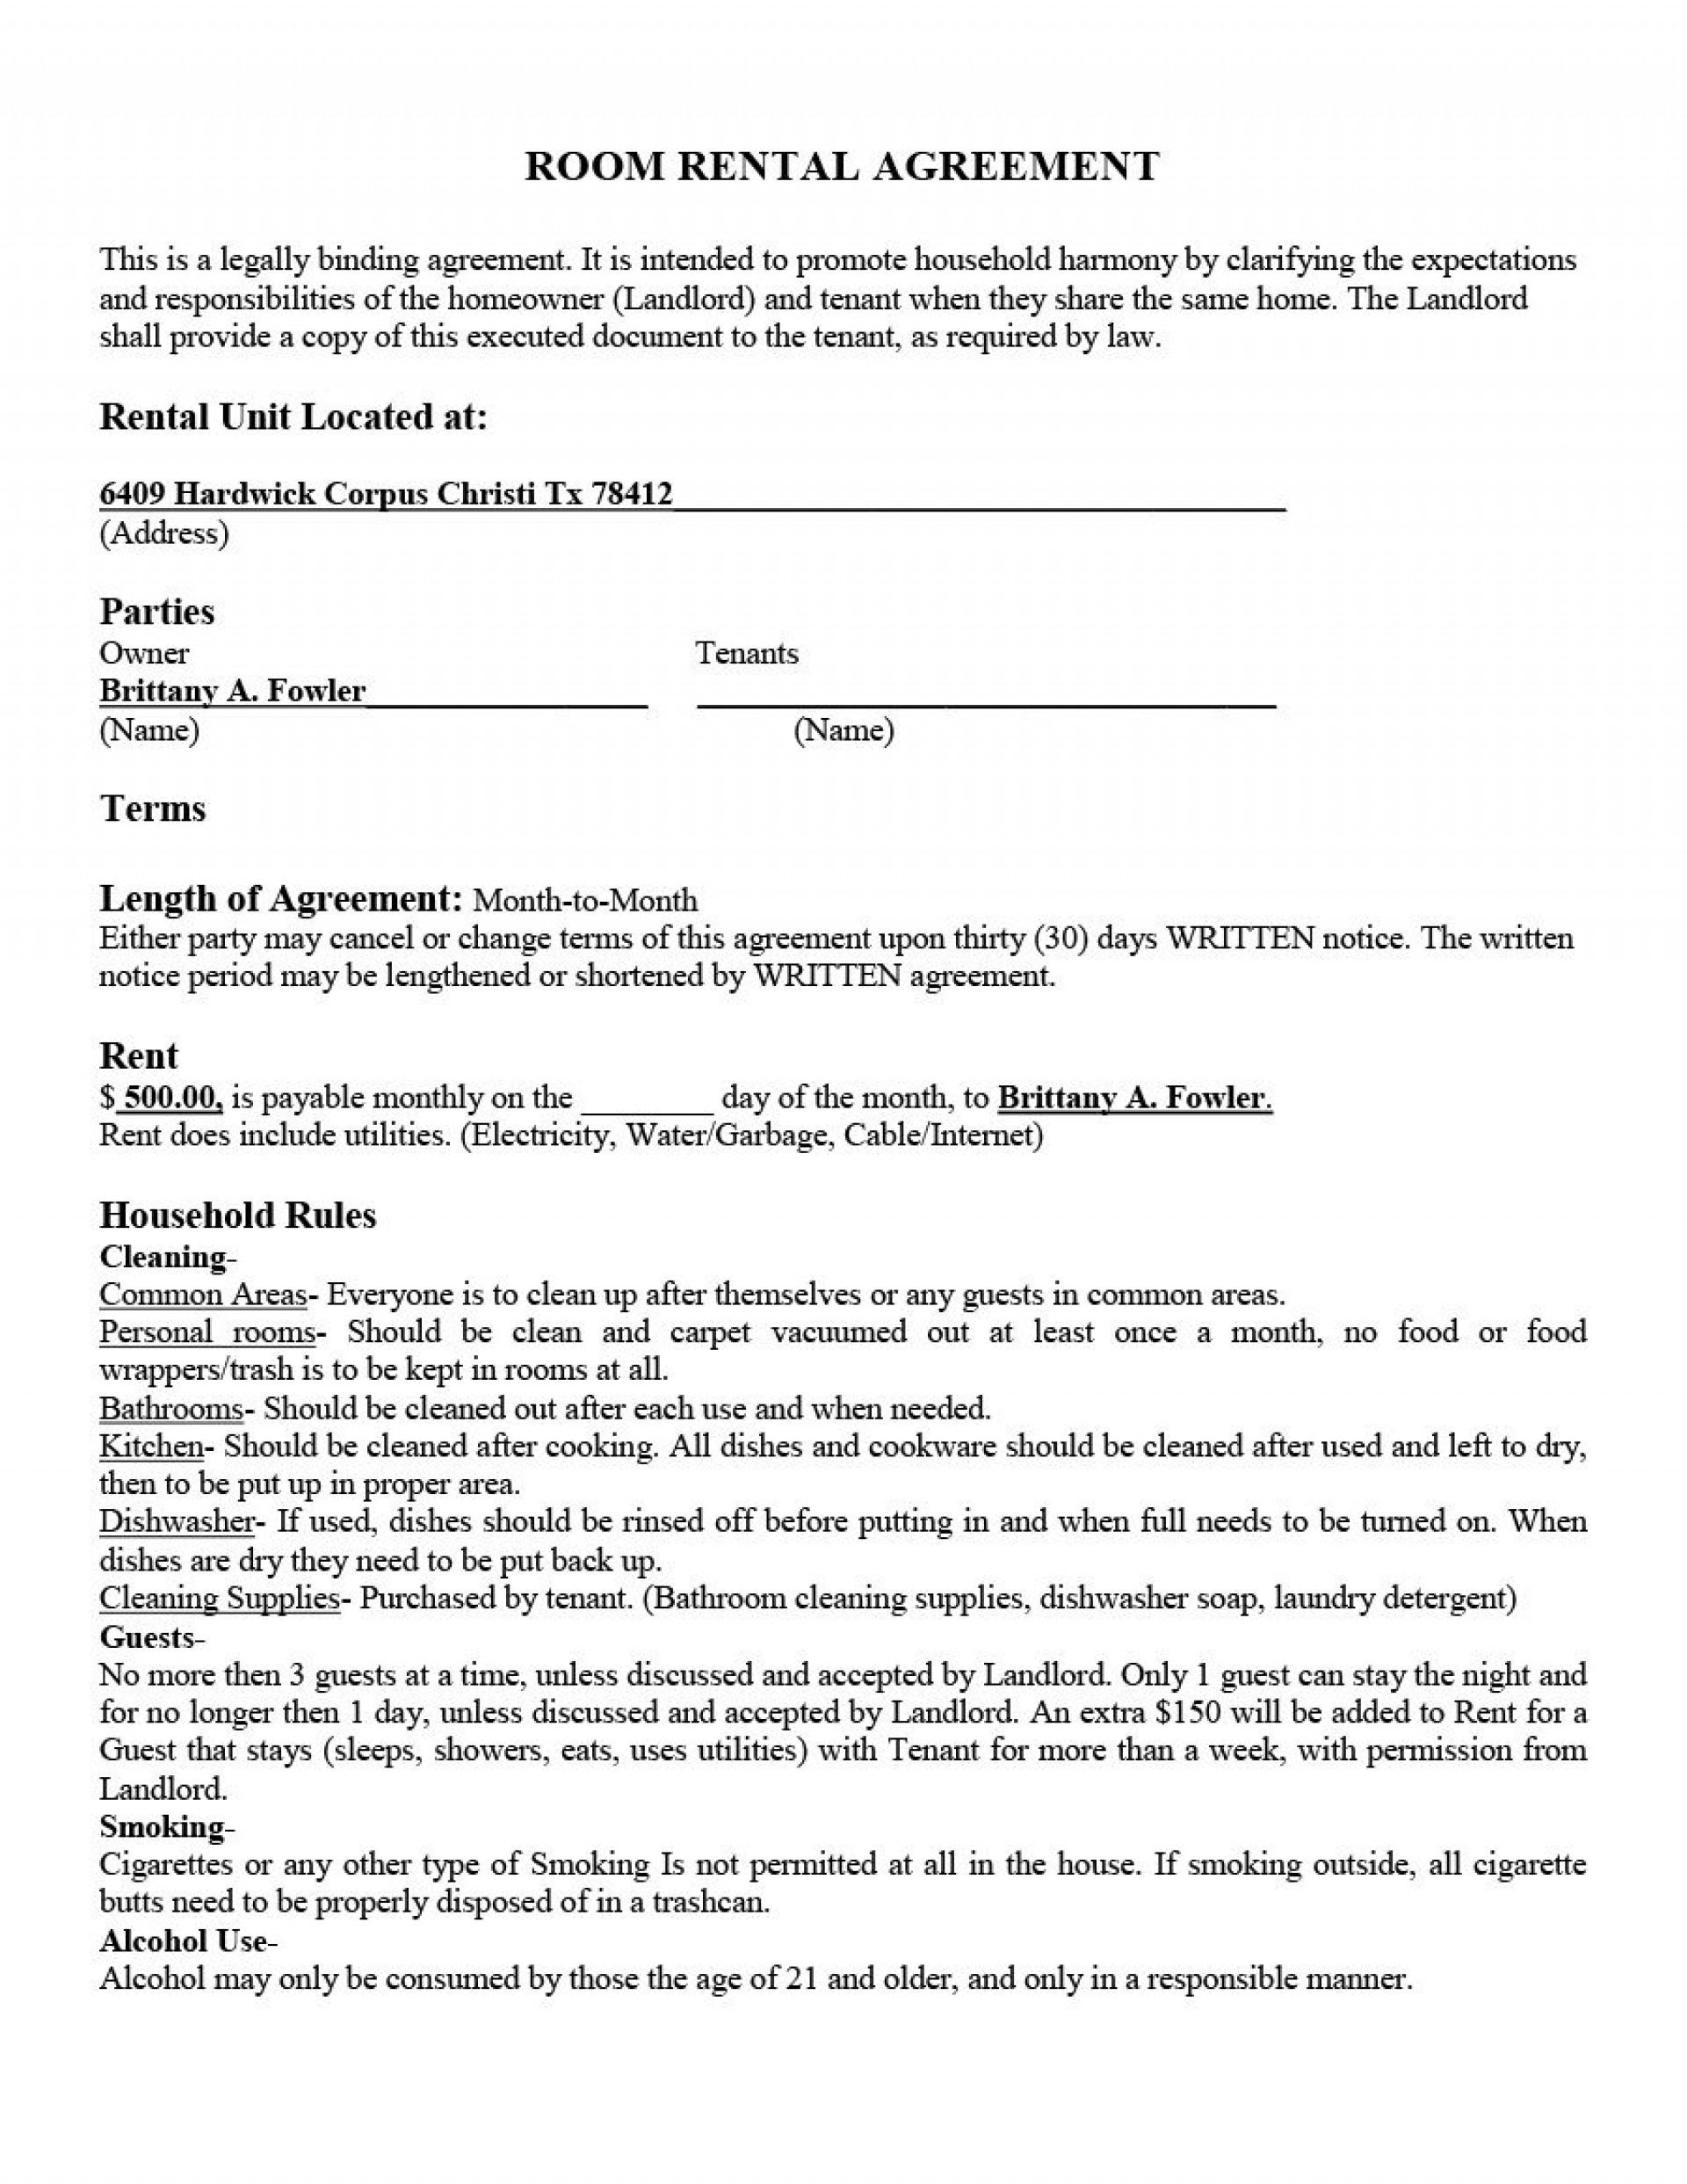 005 Staggering Free Room Rental Agreement Template Word Concept  Doc Uk1920